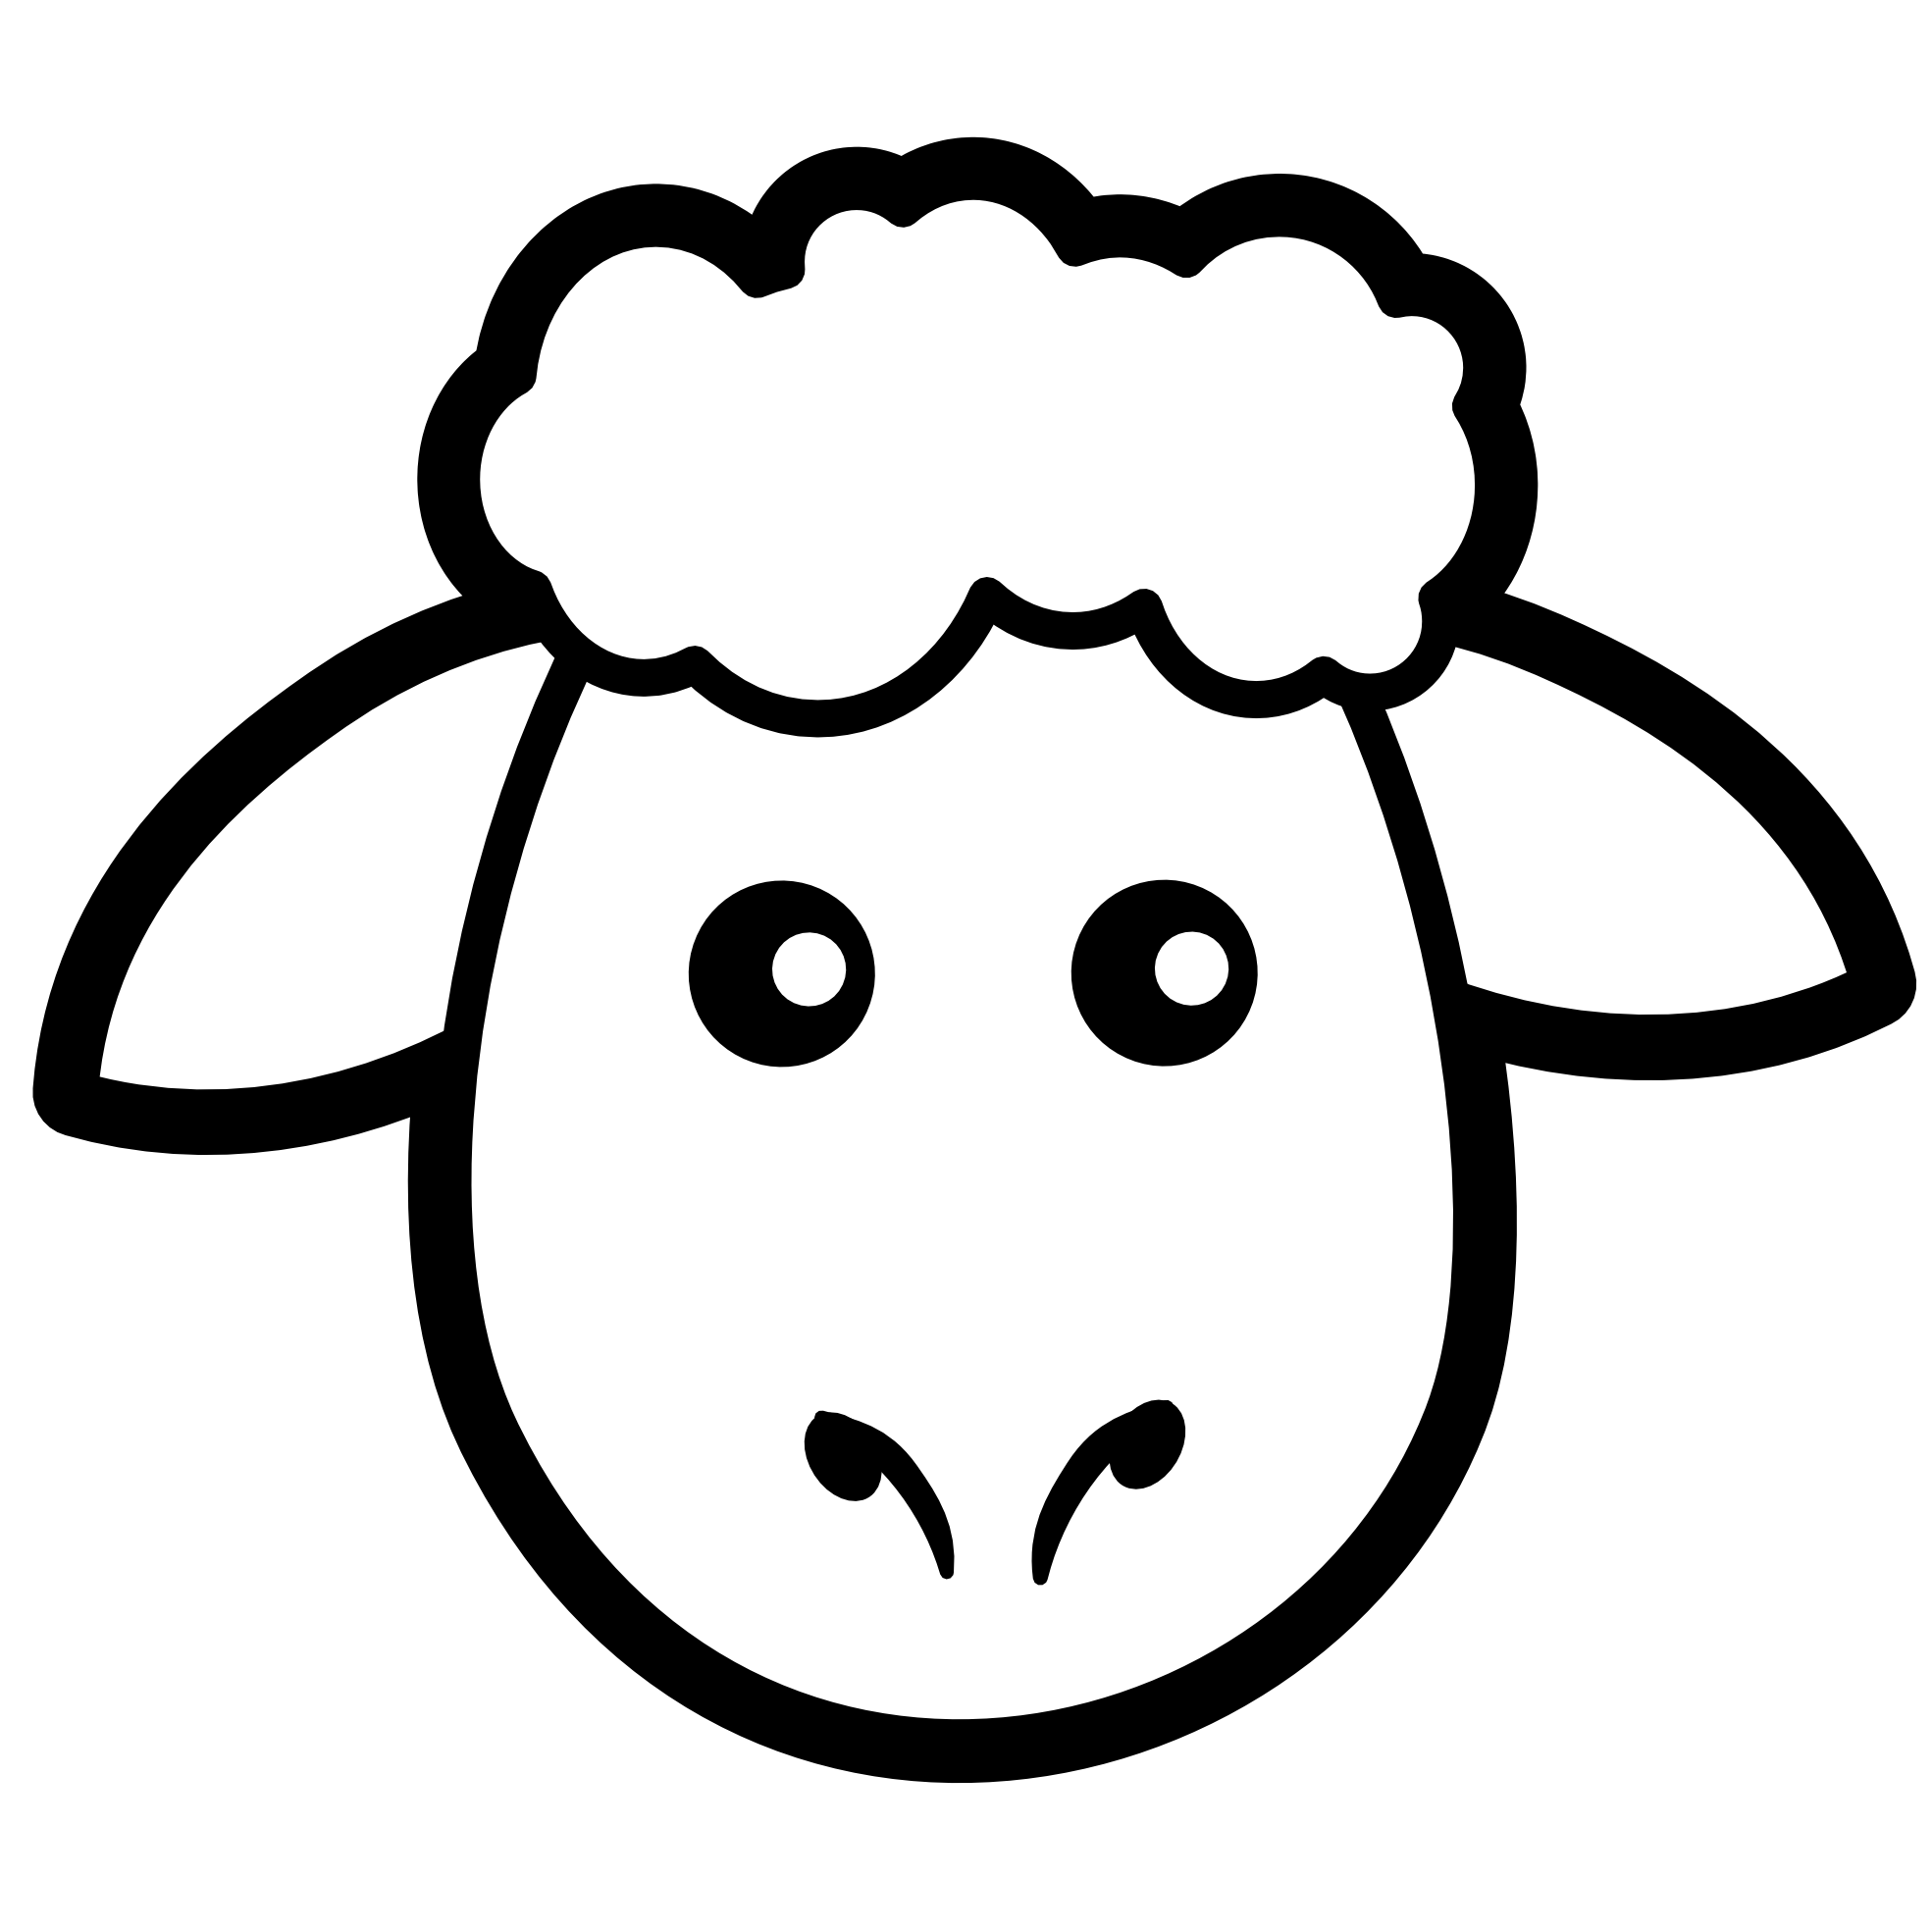 Mask clipart lamb. Straight face black and